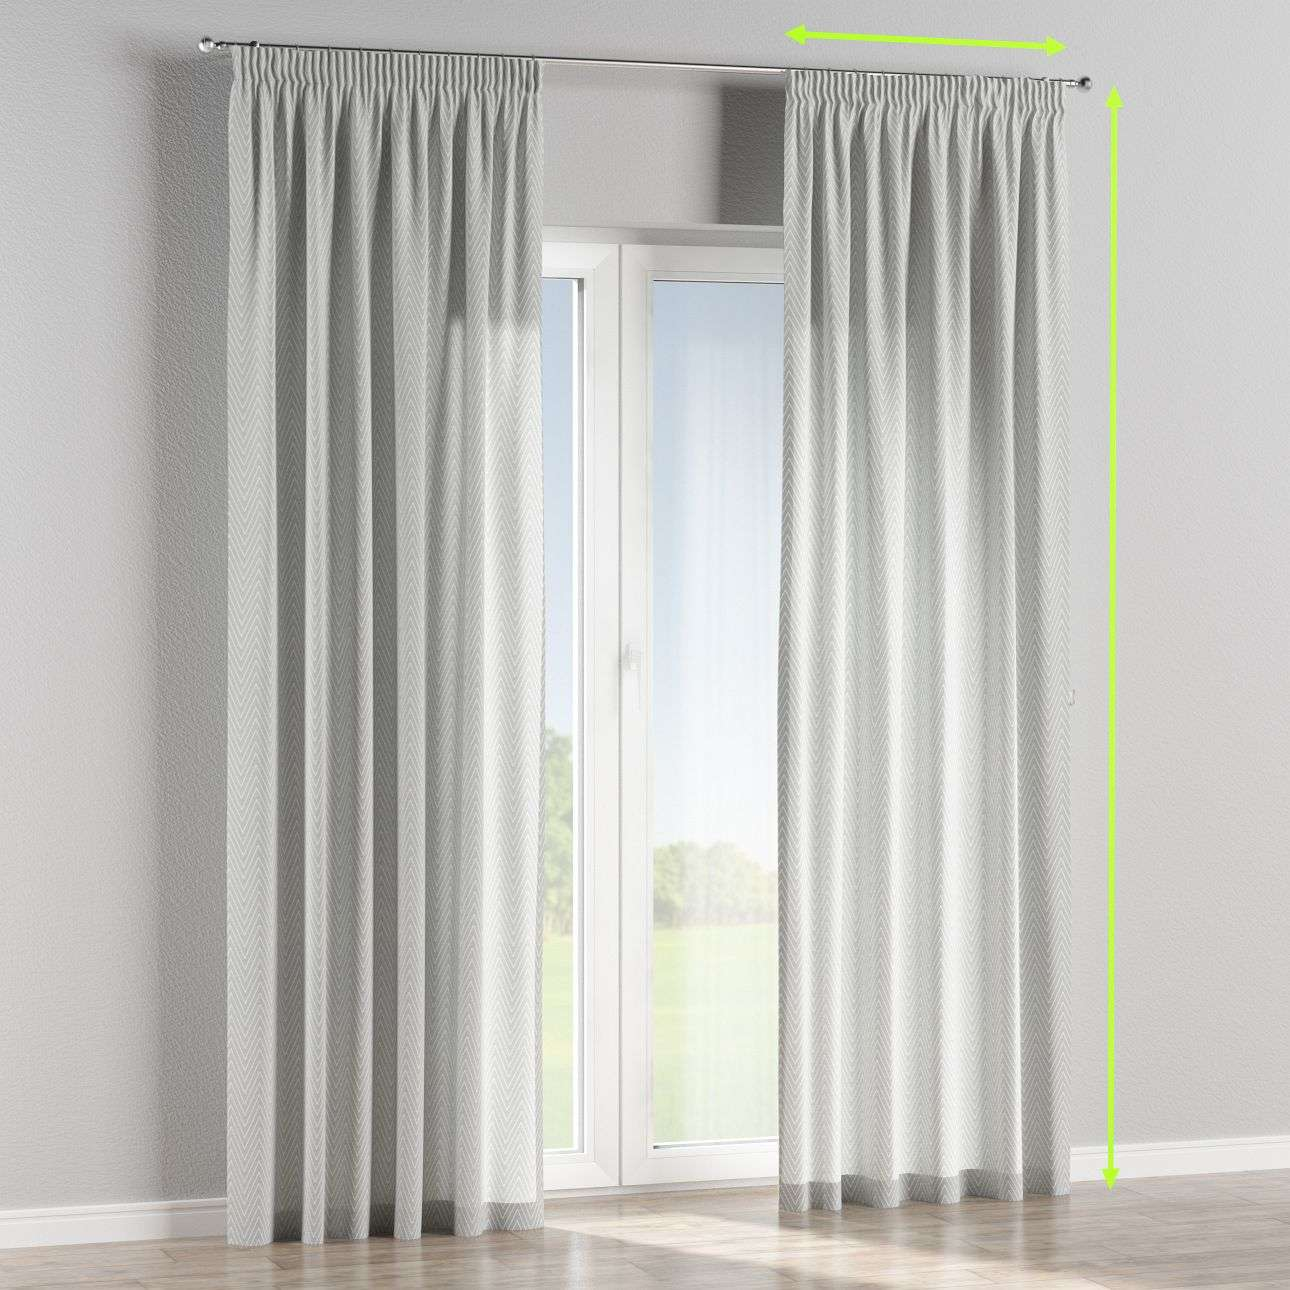 Pencil pleat curtains in collection Brooklyn, fabric: 137-87